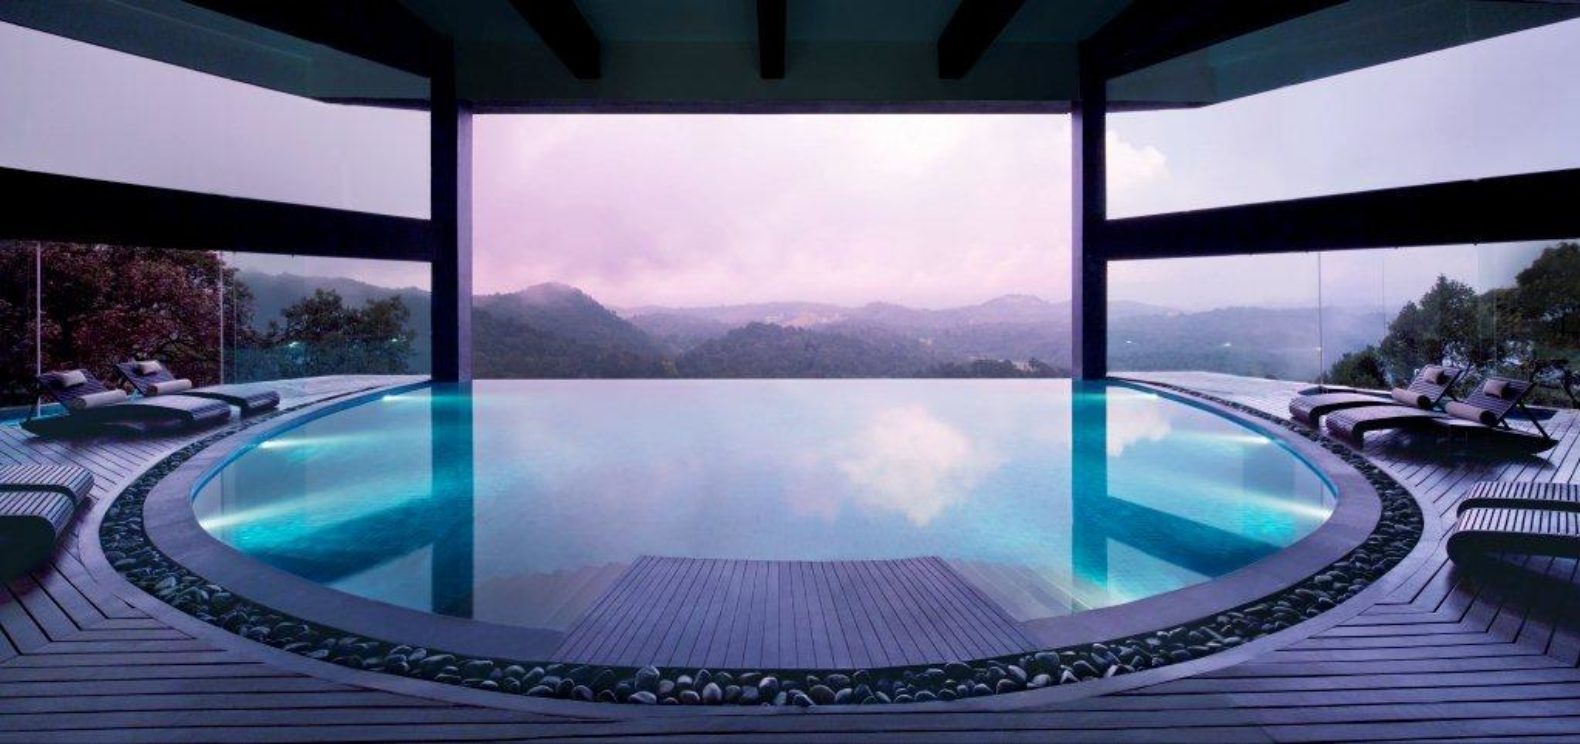 Indoor pool with beautiful view over mountain forest sunset and clouds Vivanta By Taj - Madikeri, Coorg India